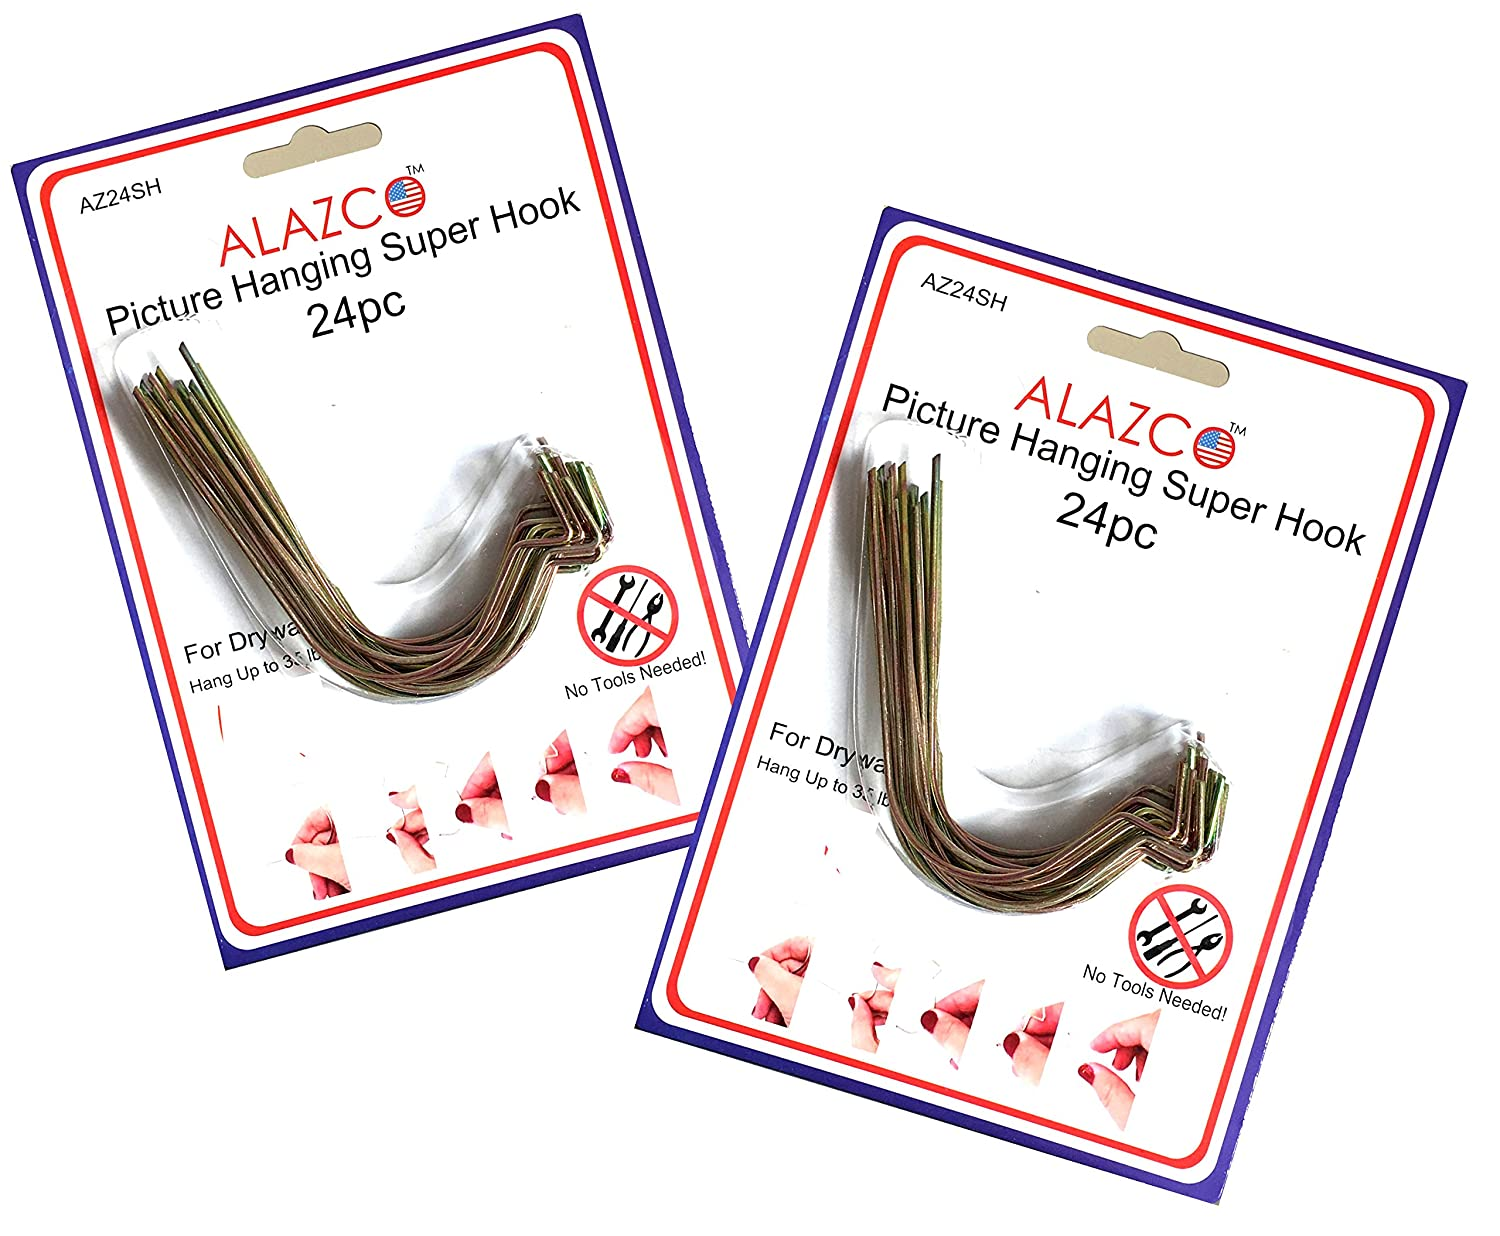 24pc set alazco super hooks hang pictures without any tool